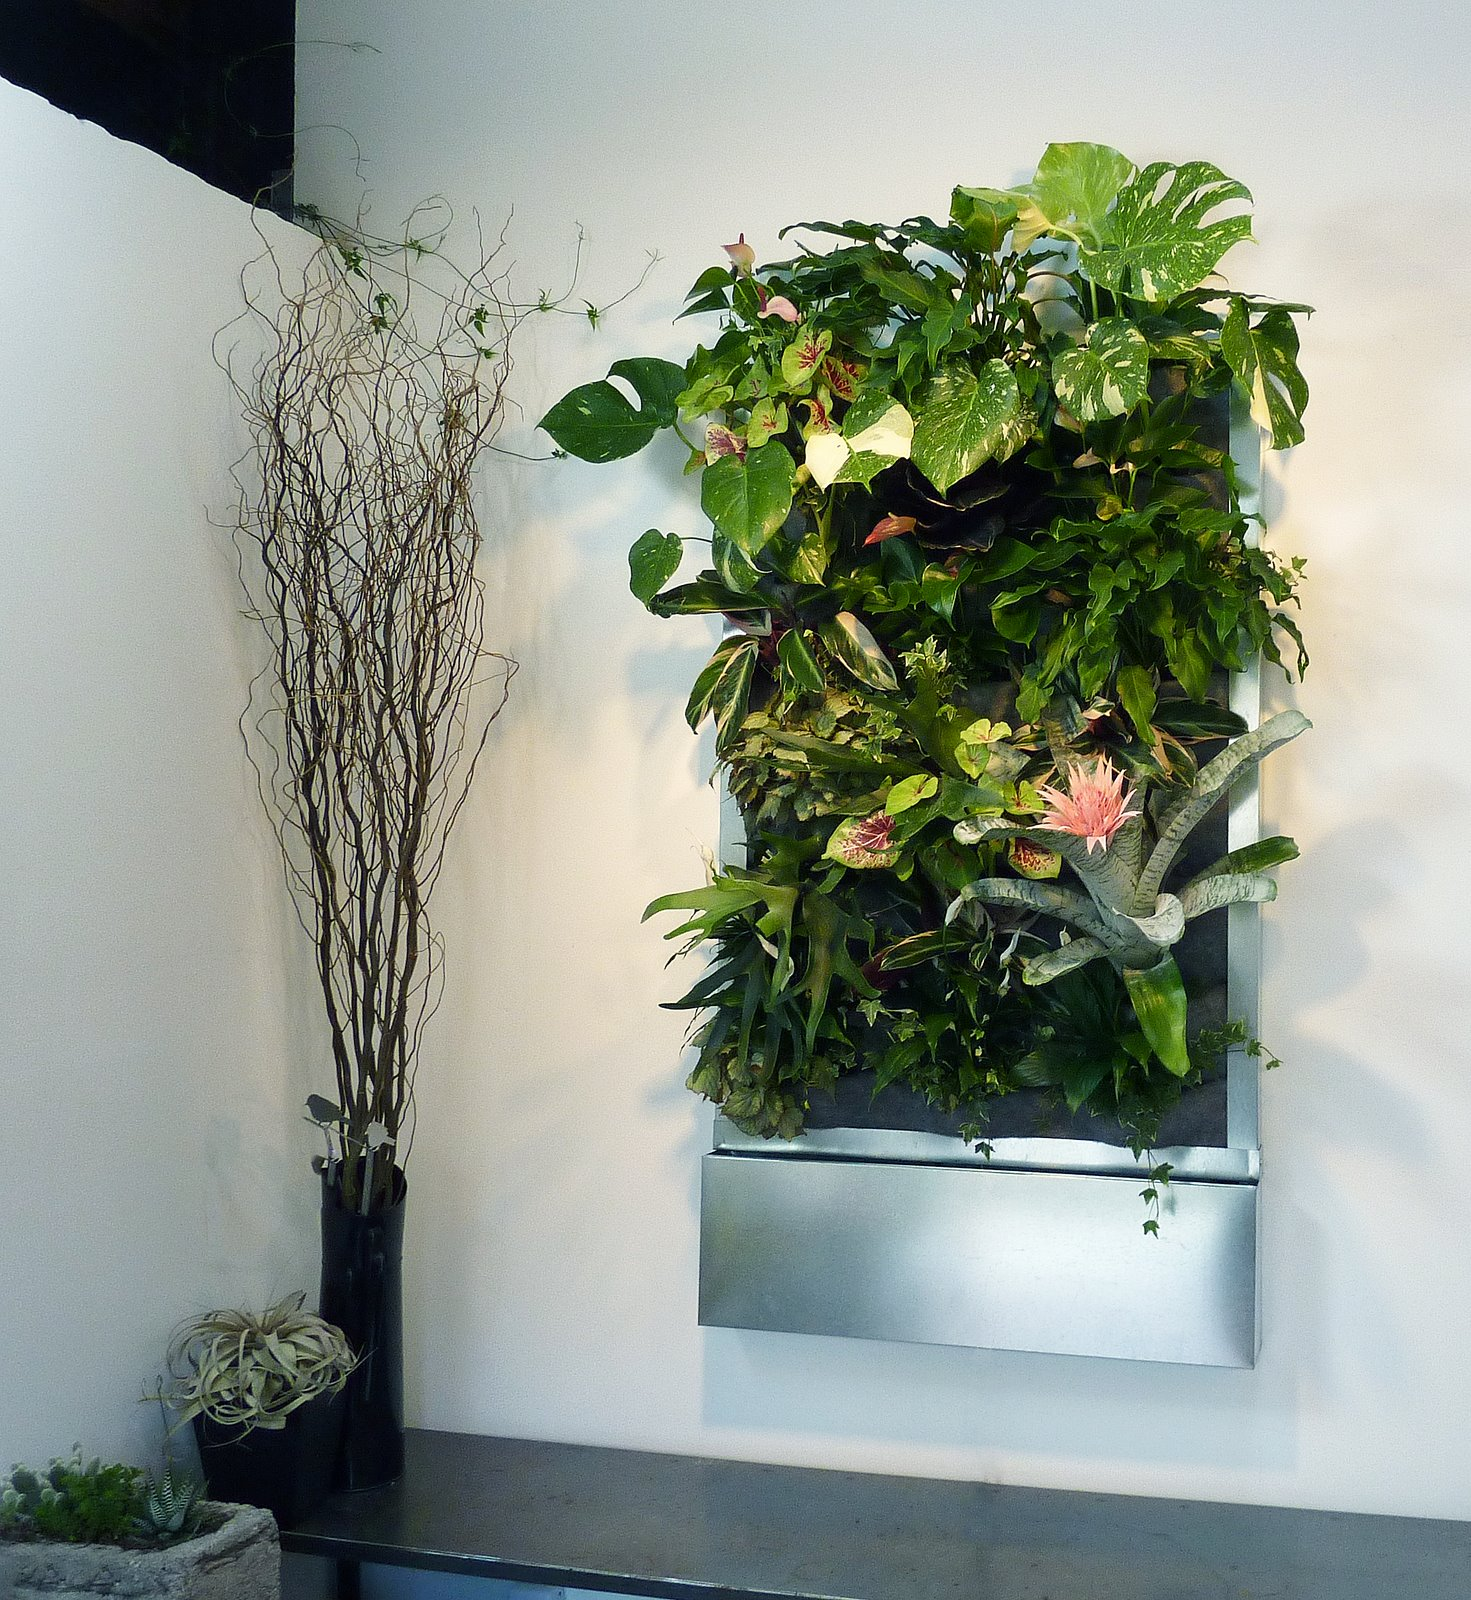 plants on walls vertical garden systems july 2010. Black Bedroom Furniture Sets. Home Design Ideas